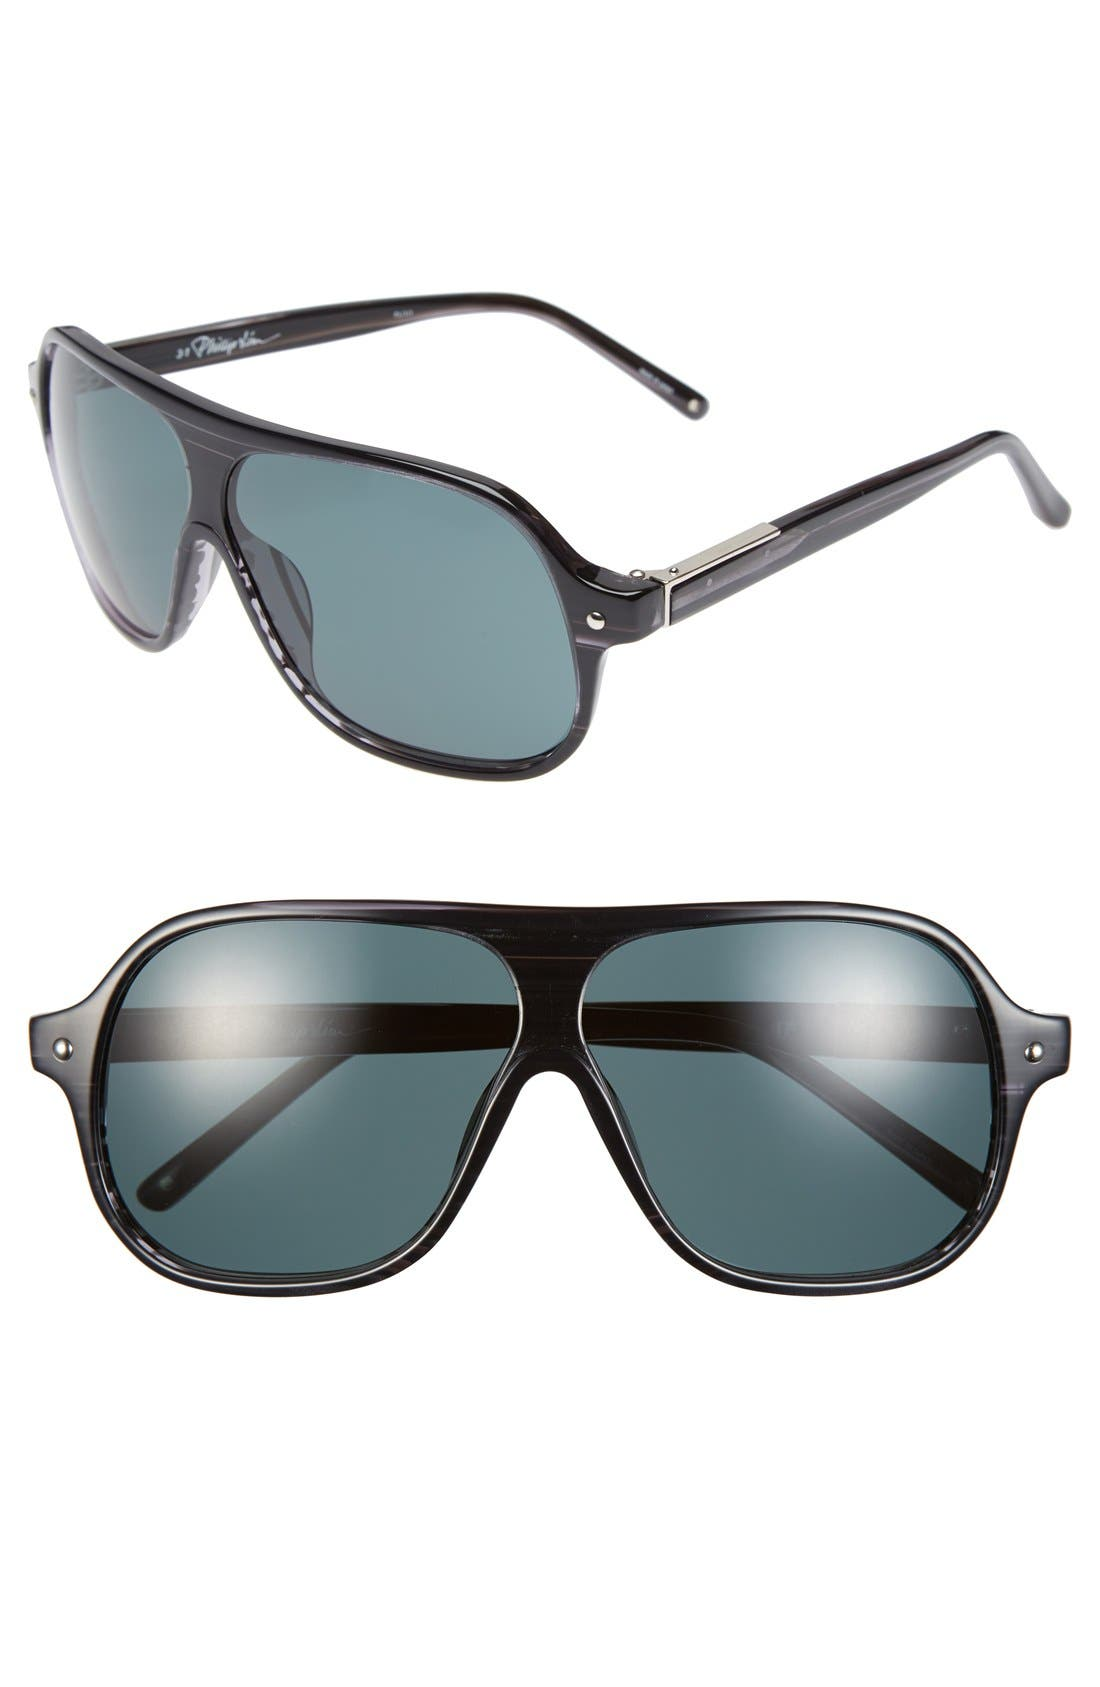 Alternate Image 1 Selected - 3.1 Phillip Lim 64mm Aviator Sunglasses